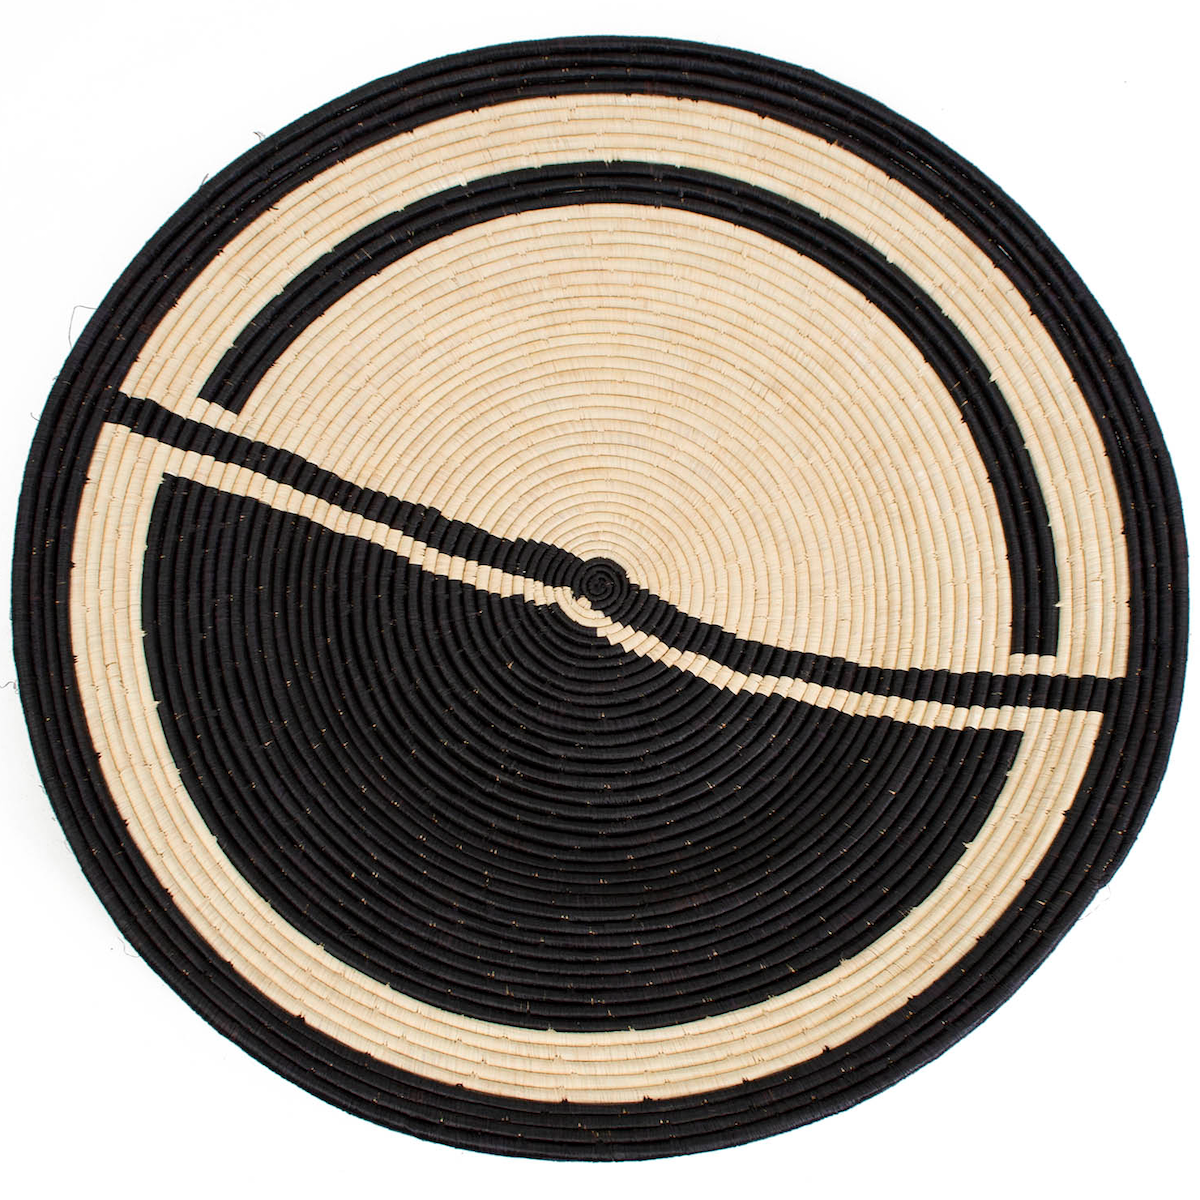 GEO BLACK JUMBO RAFFIA PLATE by Kazi Goods at SARZA. decor, Kazi Goods, wall art, wall baskets